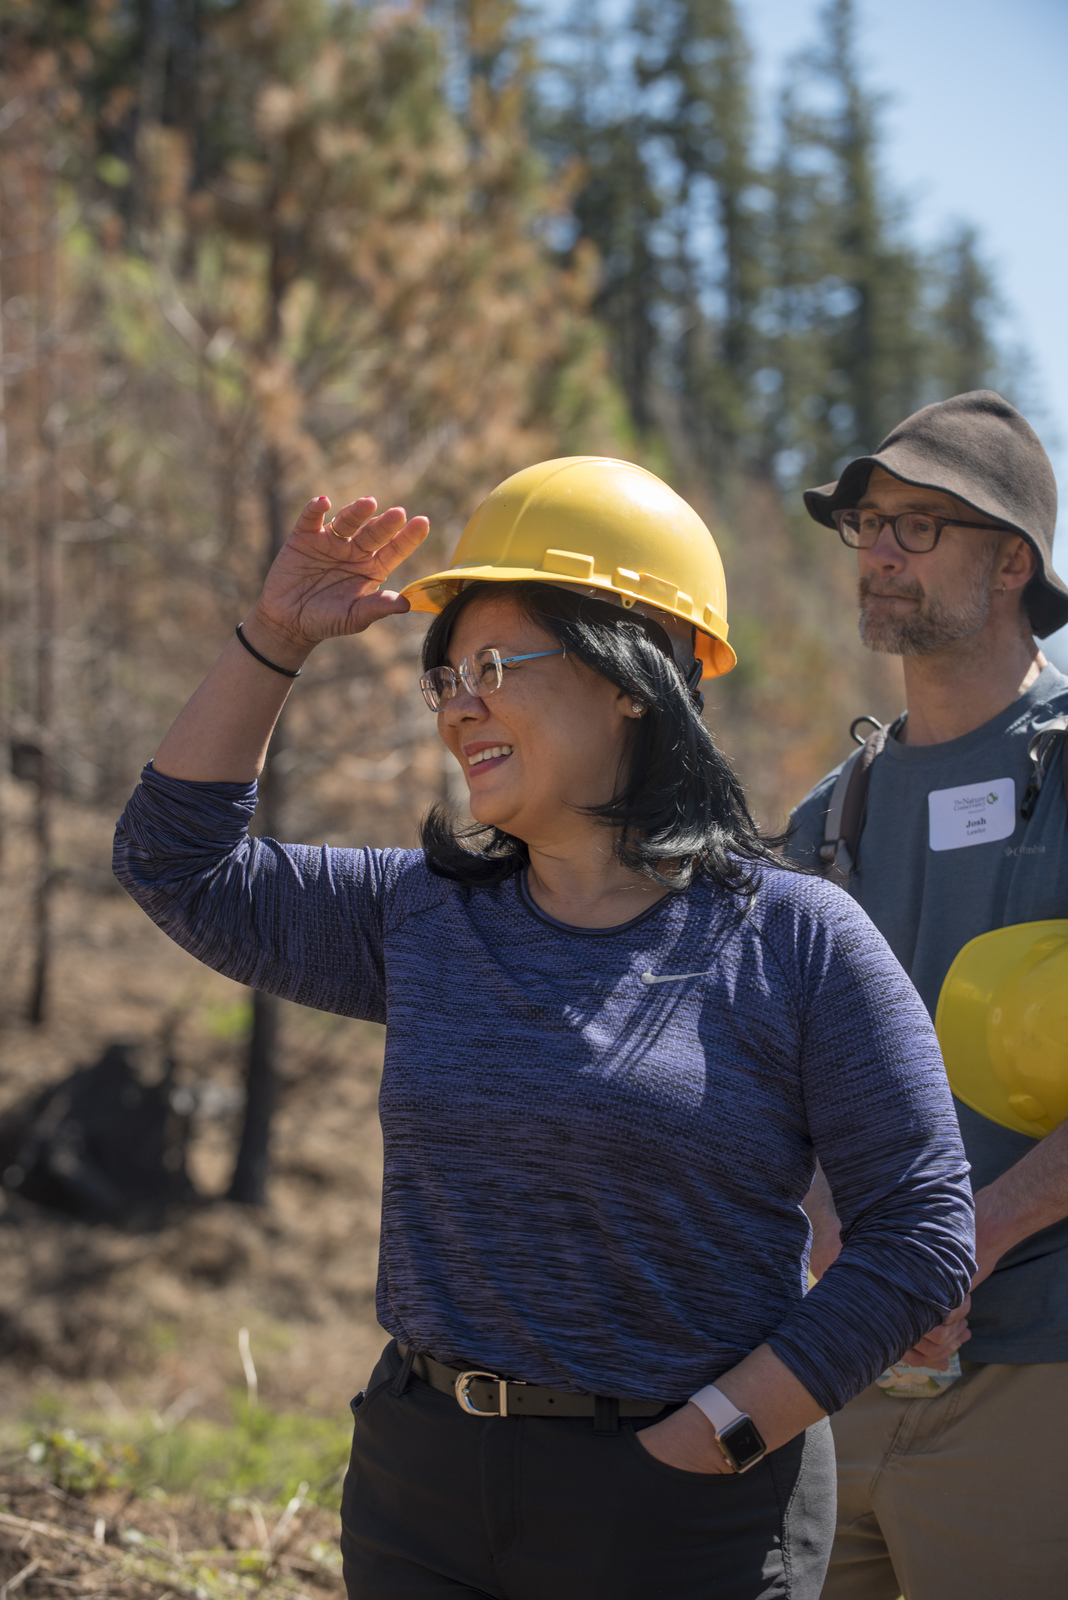 Jenette Ramos during a day of tree planting in a burned landscape on Rosyln Ridge. © Hannah Letinich